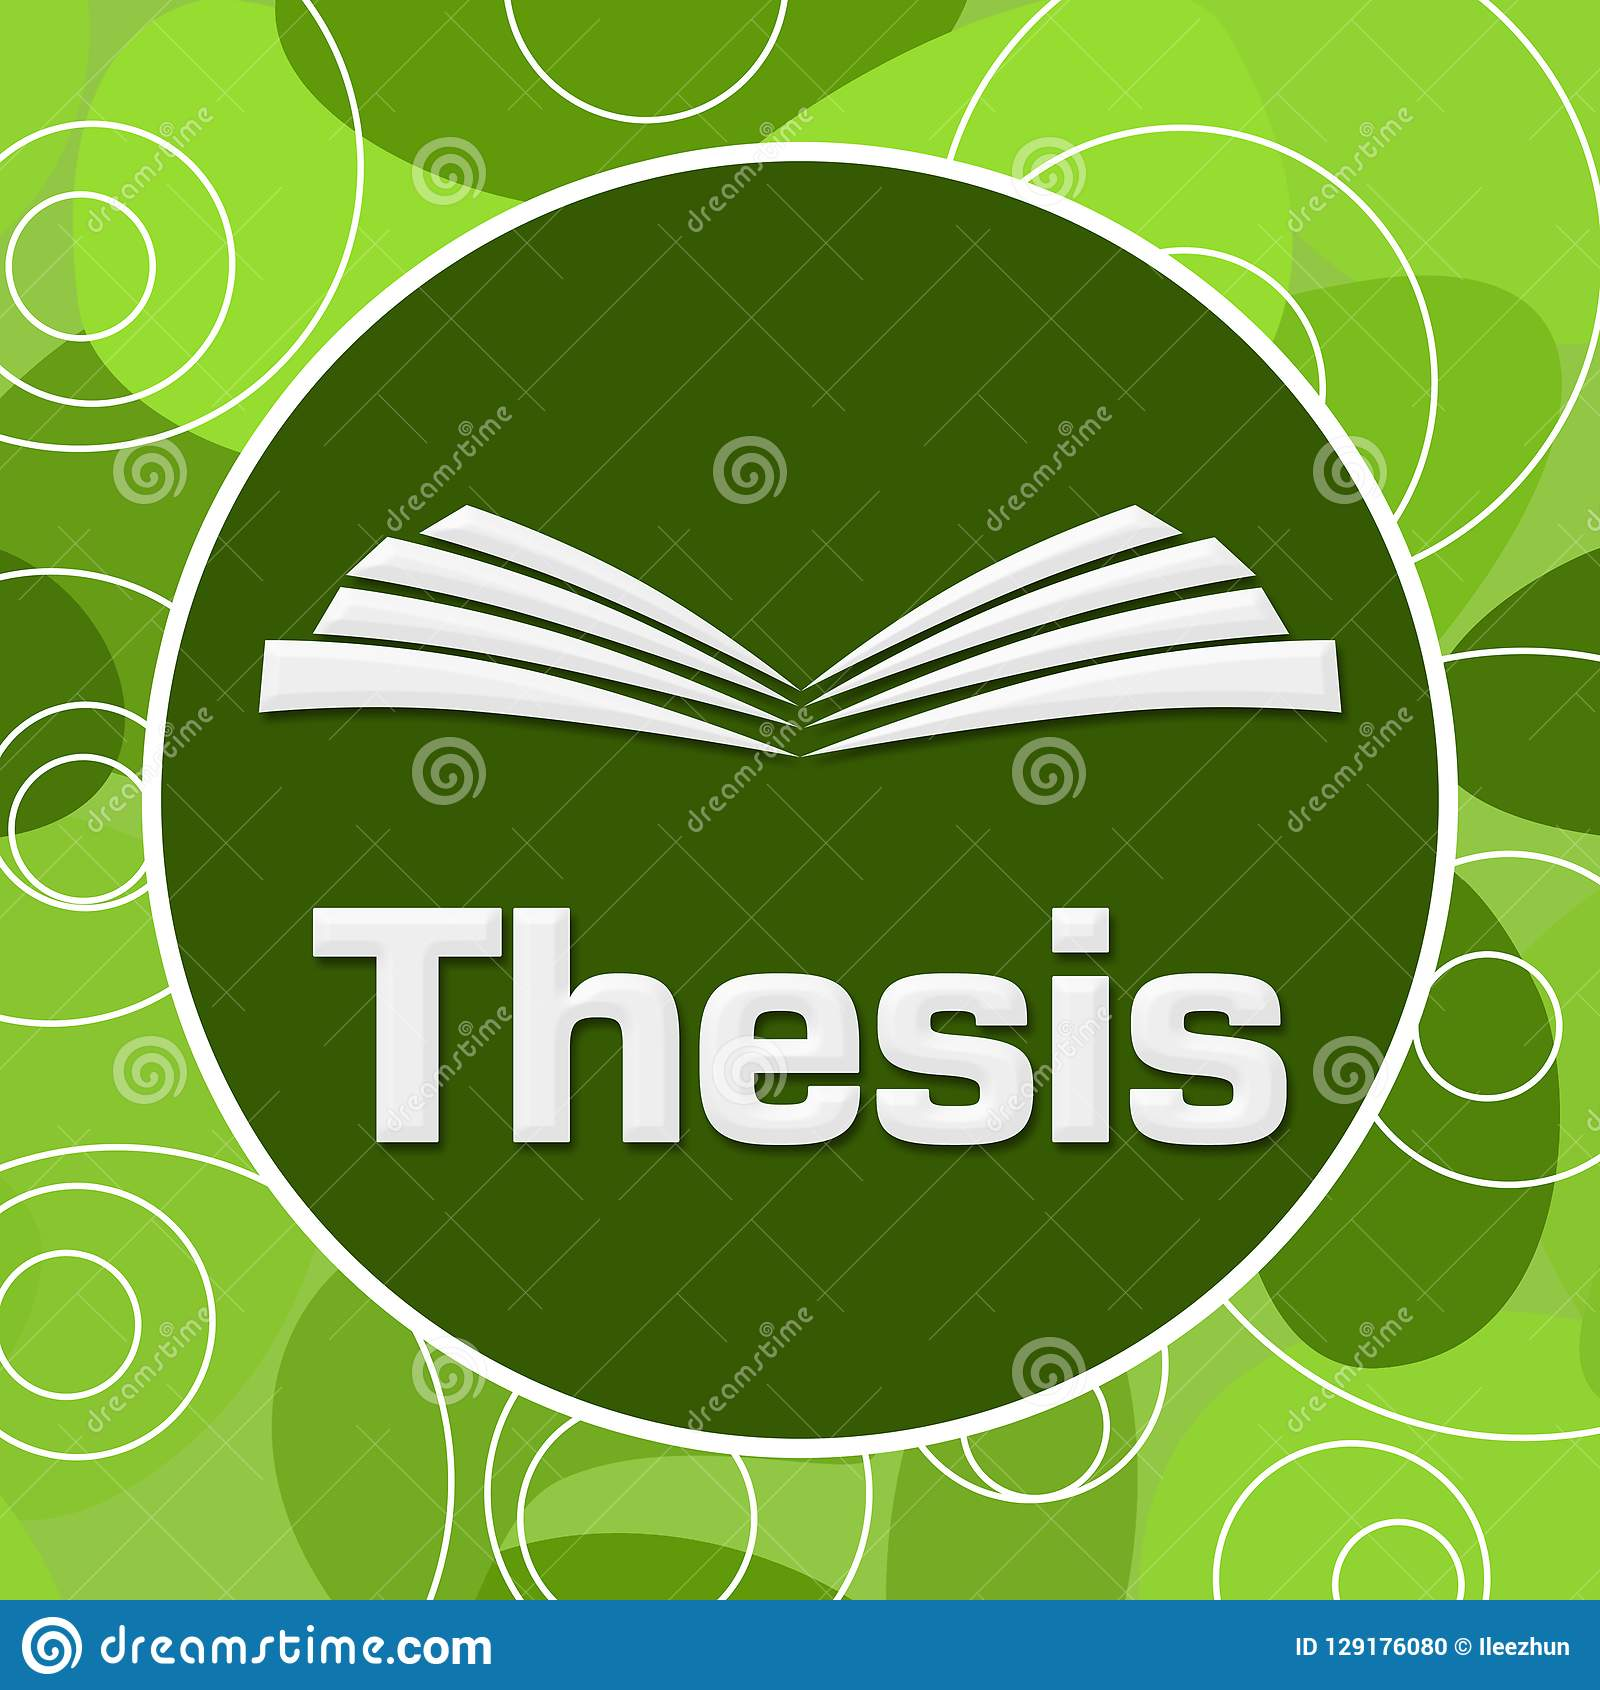 Thesis Stock Illustrations – 784 Thesis Stock Illustrations, Vectors &  Clipart - Dreamstime